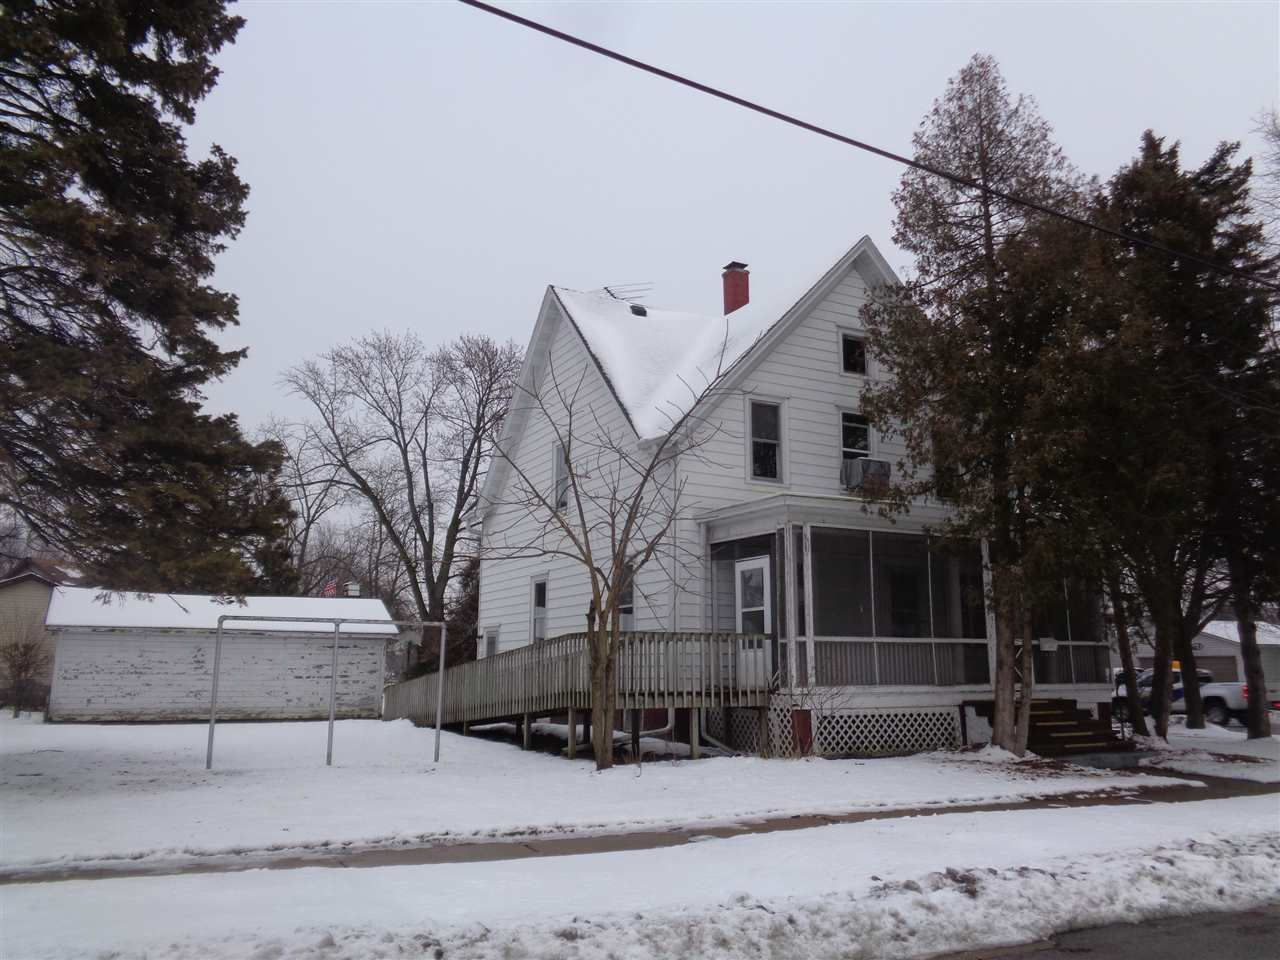 601 N Montgomery St, Watertown, WI 53098 - #: 1868946